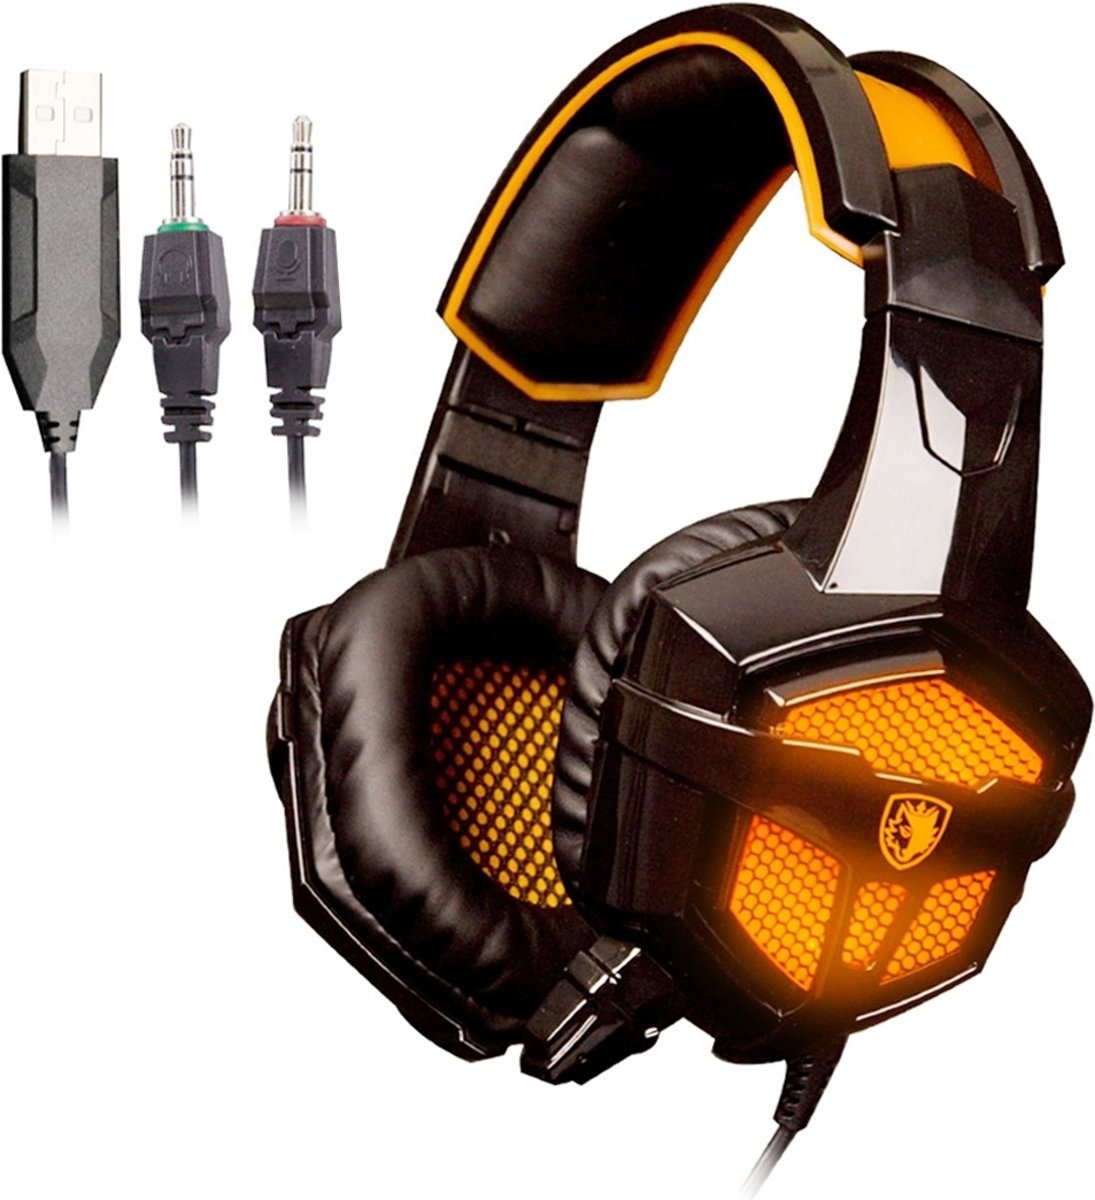 SADES 738 USB 3.5mm Jack Over Ear Wired Stereo Gaming Headset met Mic & LED light(Oranje)